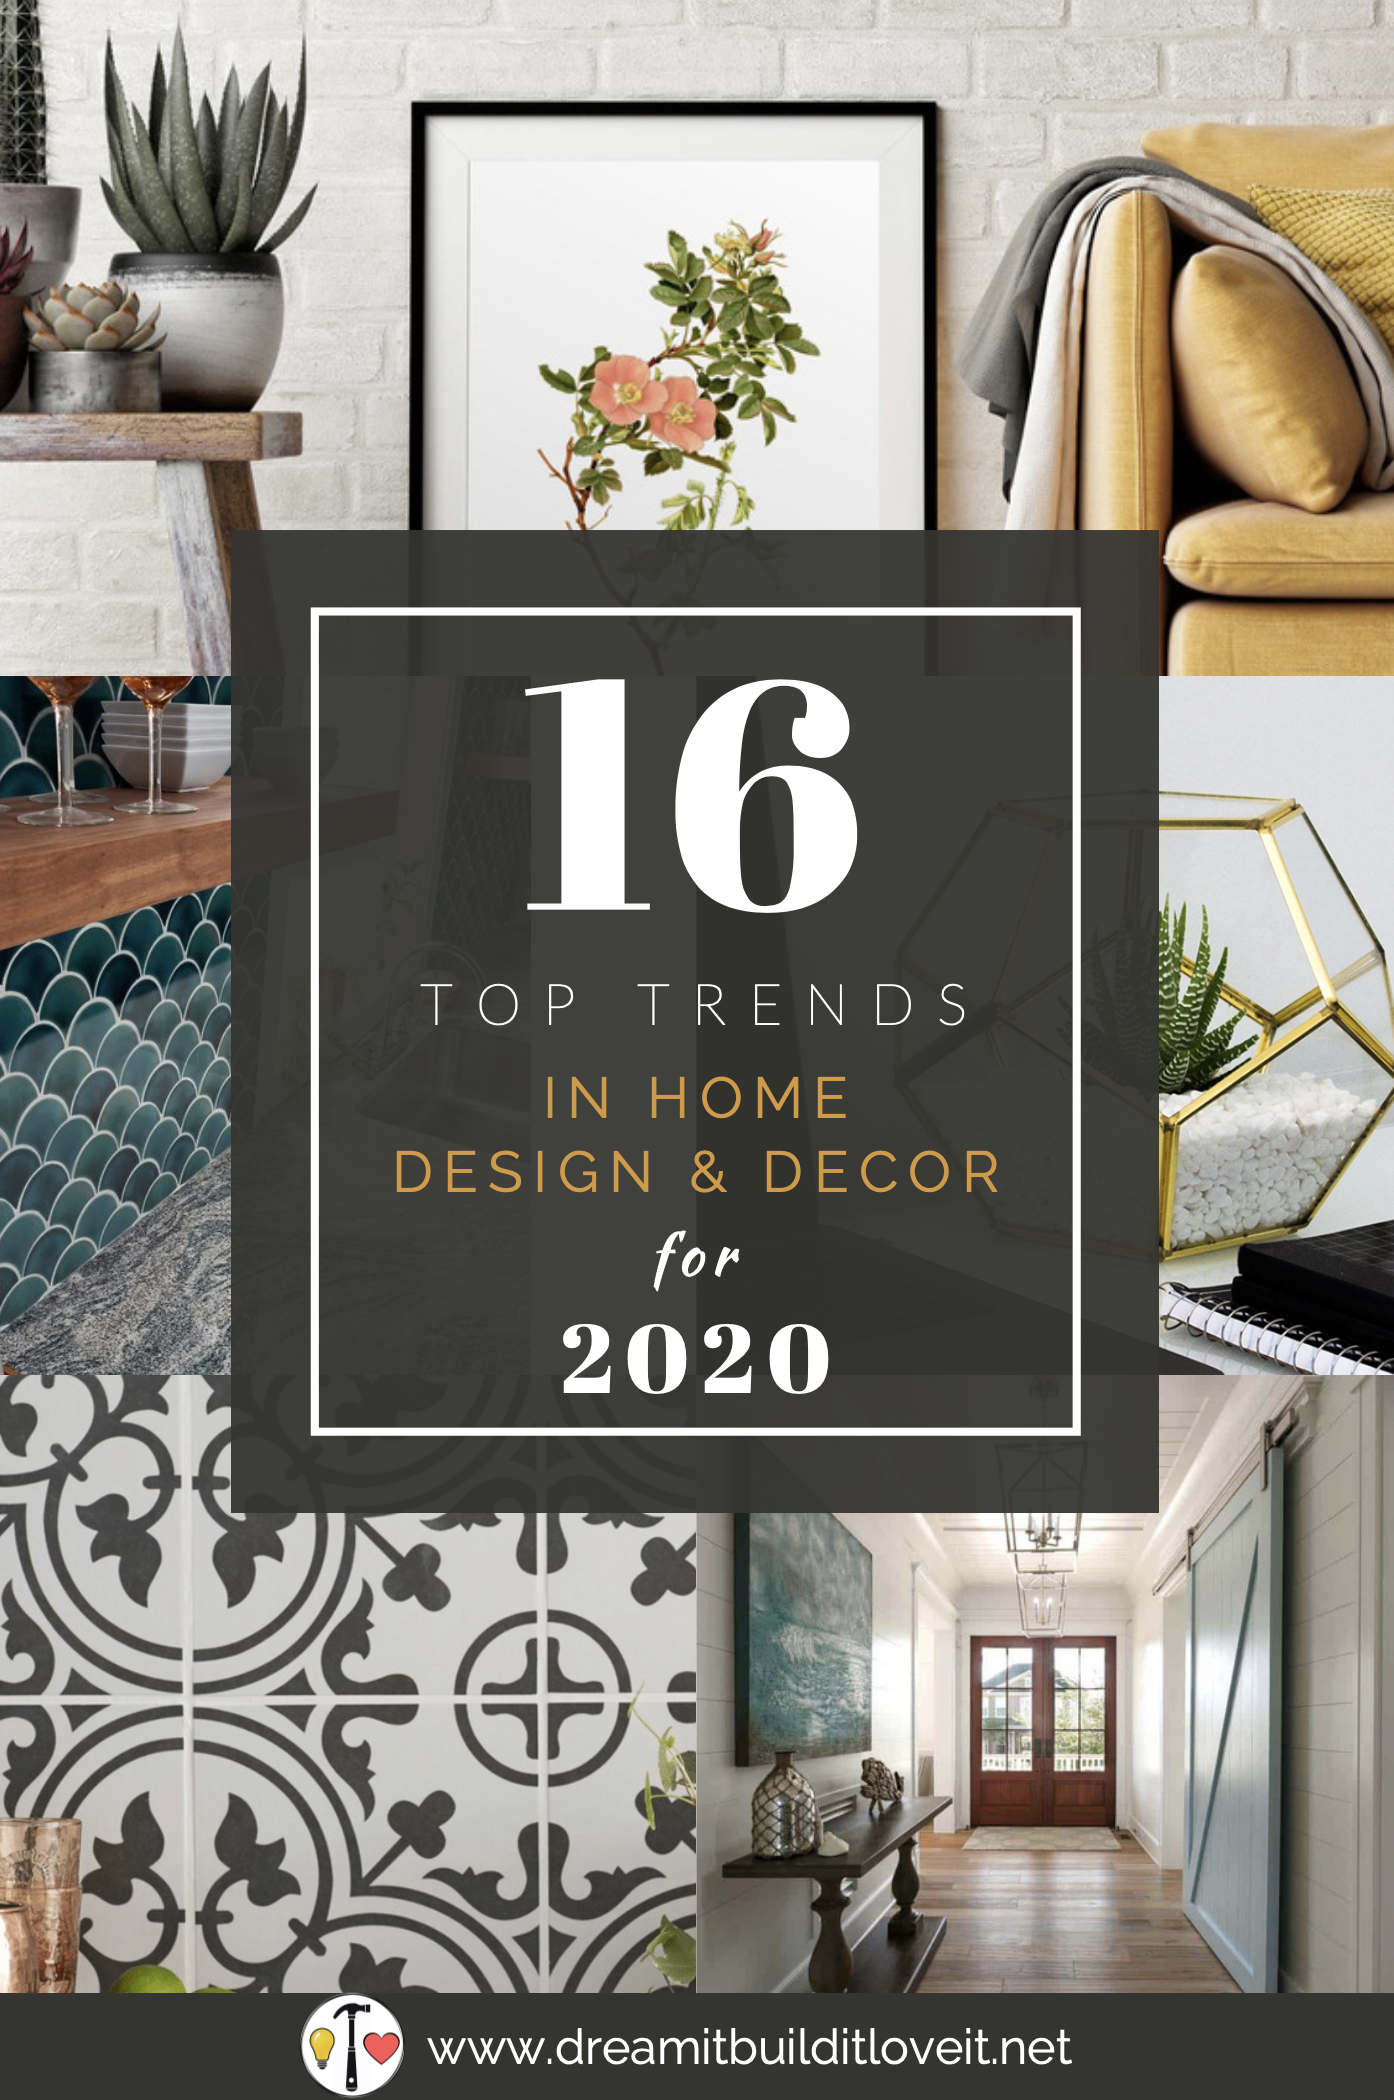 16 Top Trends In Home Design Decor For 2020 Home Design Decor Trending Decor Affordable Home Decor